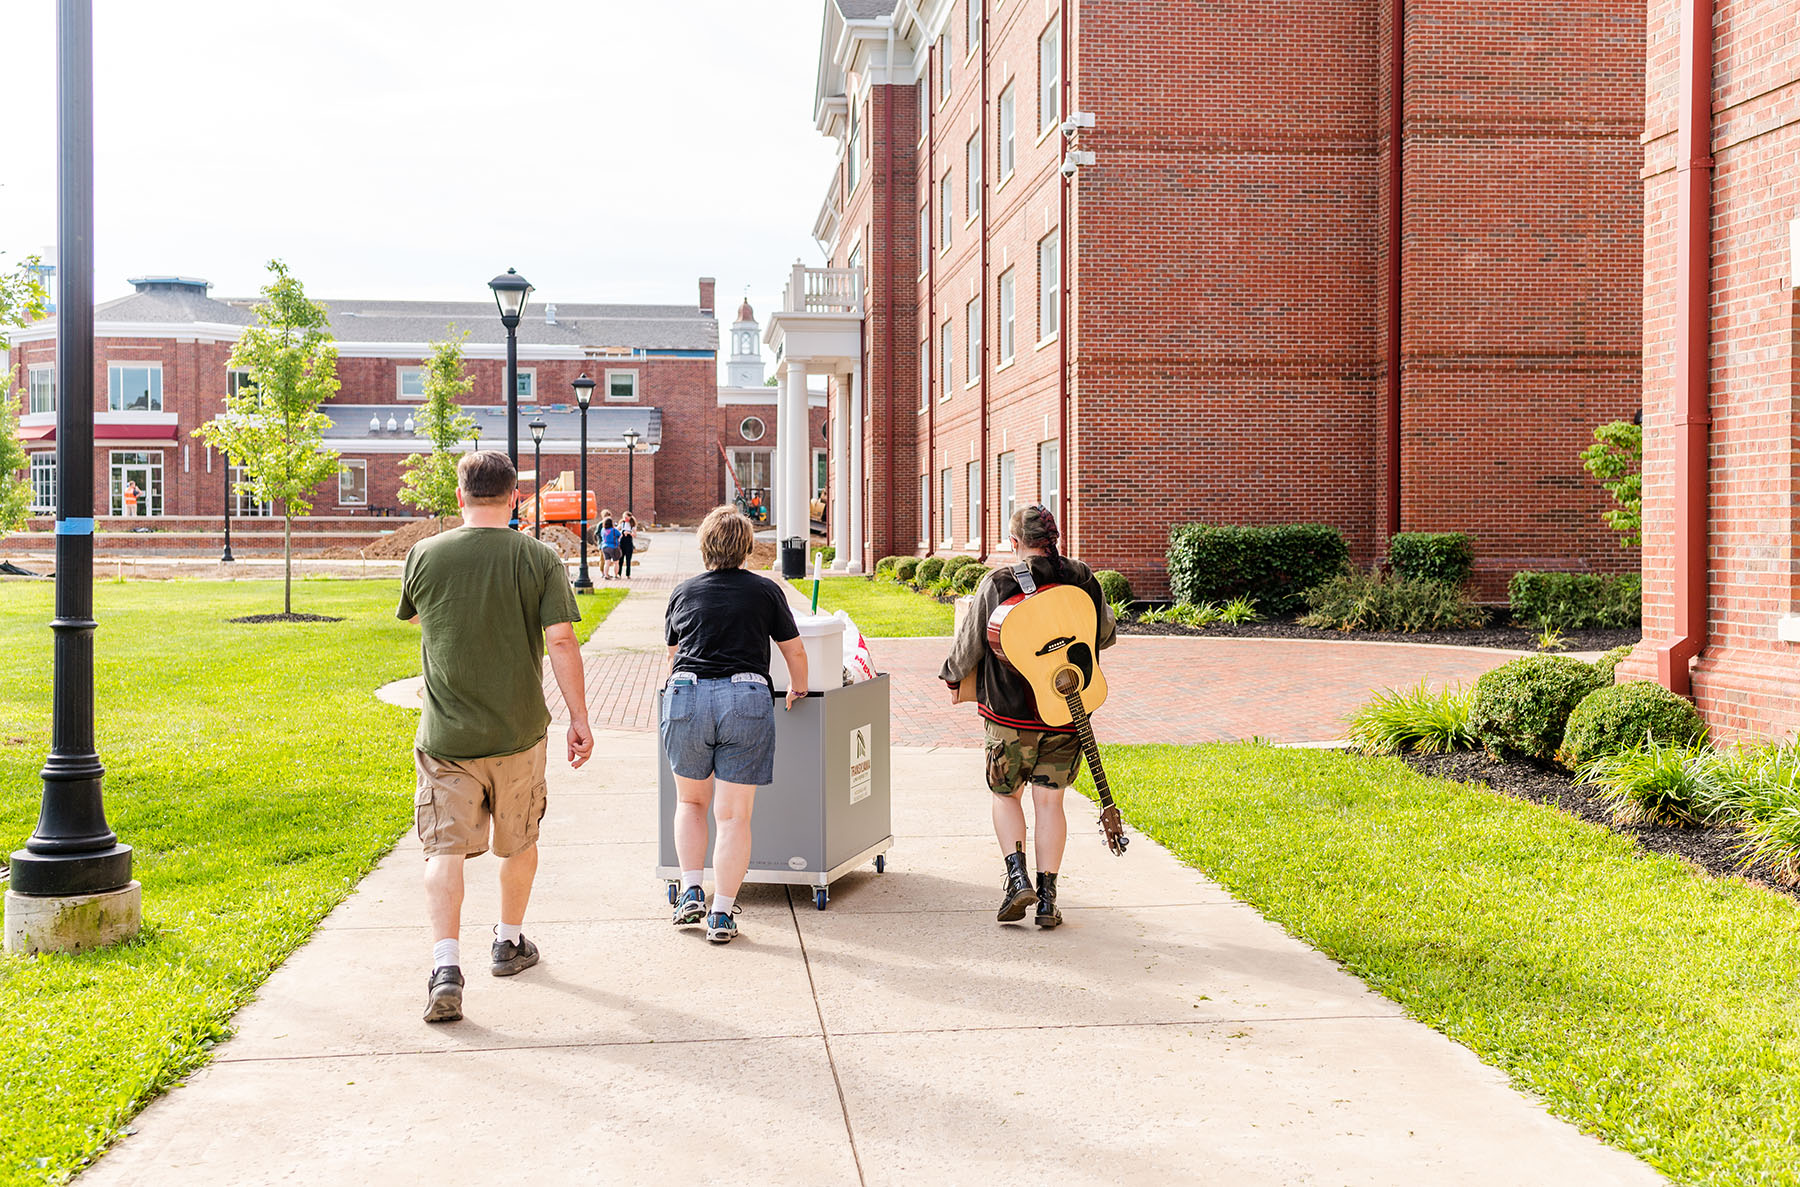 Transylvania welcomes Class of 2025 with annual Move-In Day, induction ceremony